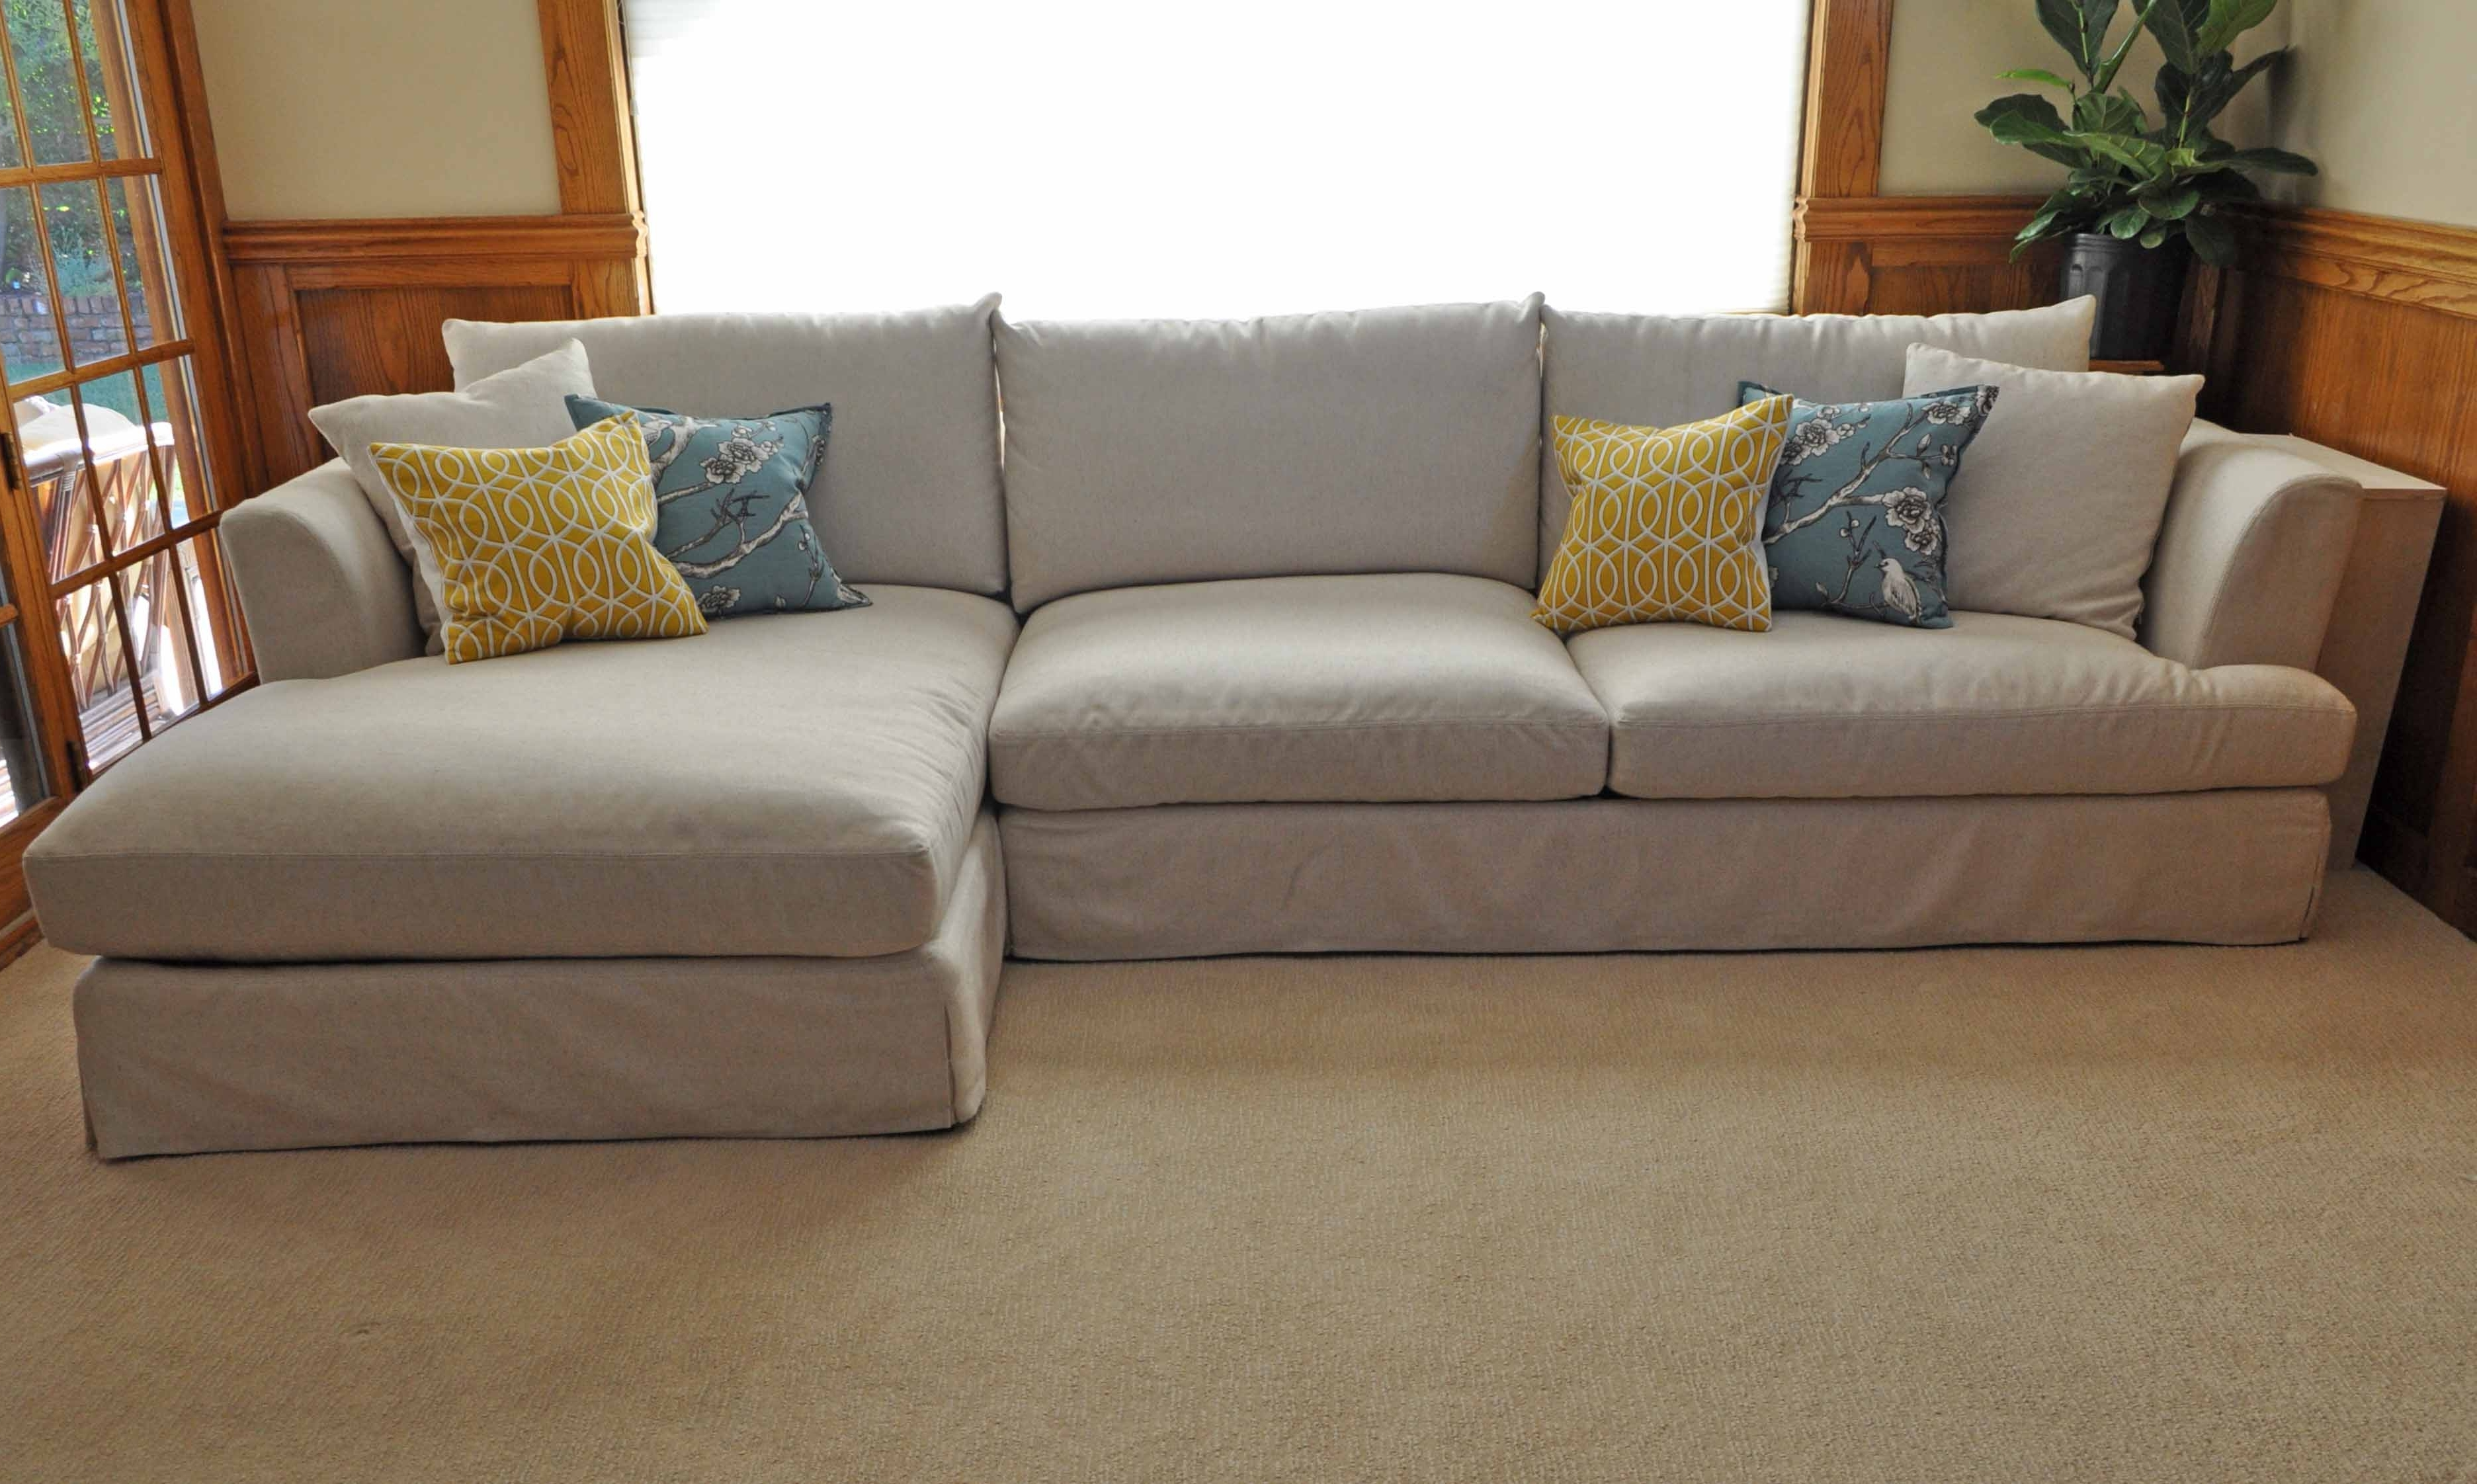 Most Recent Cream Colored Sofas With Regard To Uncategorized : Colored Sofa Within Imposing 12 Best Ideas Of (View 7 of 20)